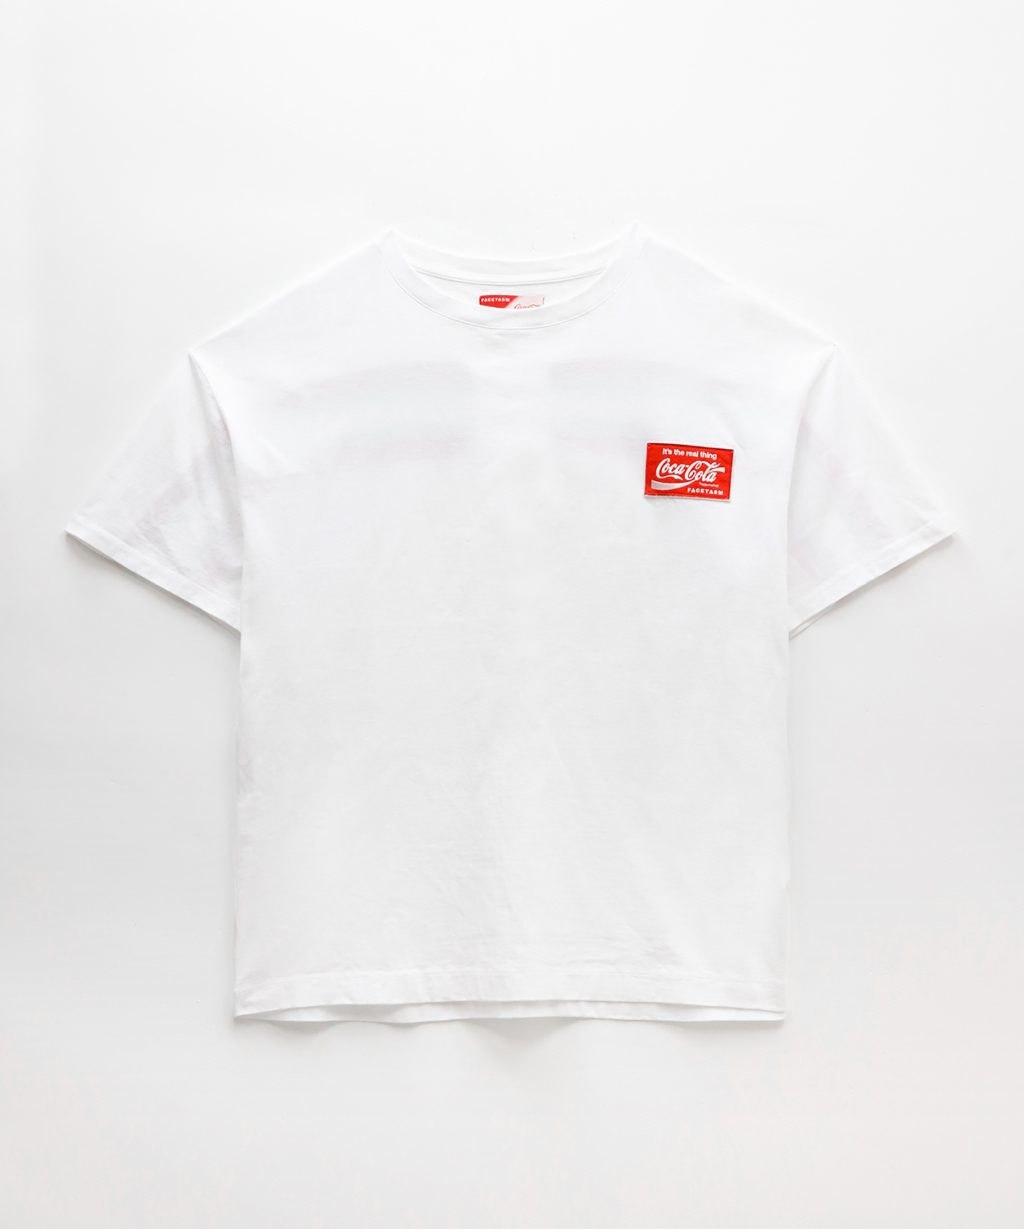 COCA-COLA-RIB-BIG-TEE-white1-1024x1229.jpg